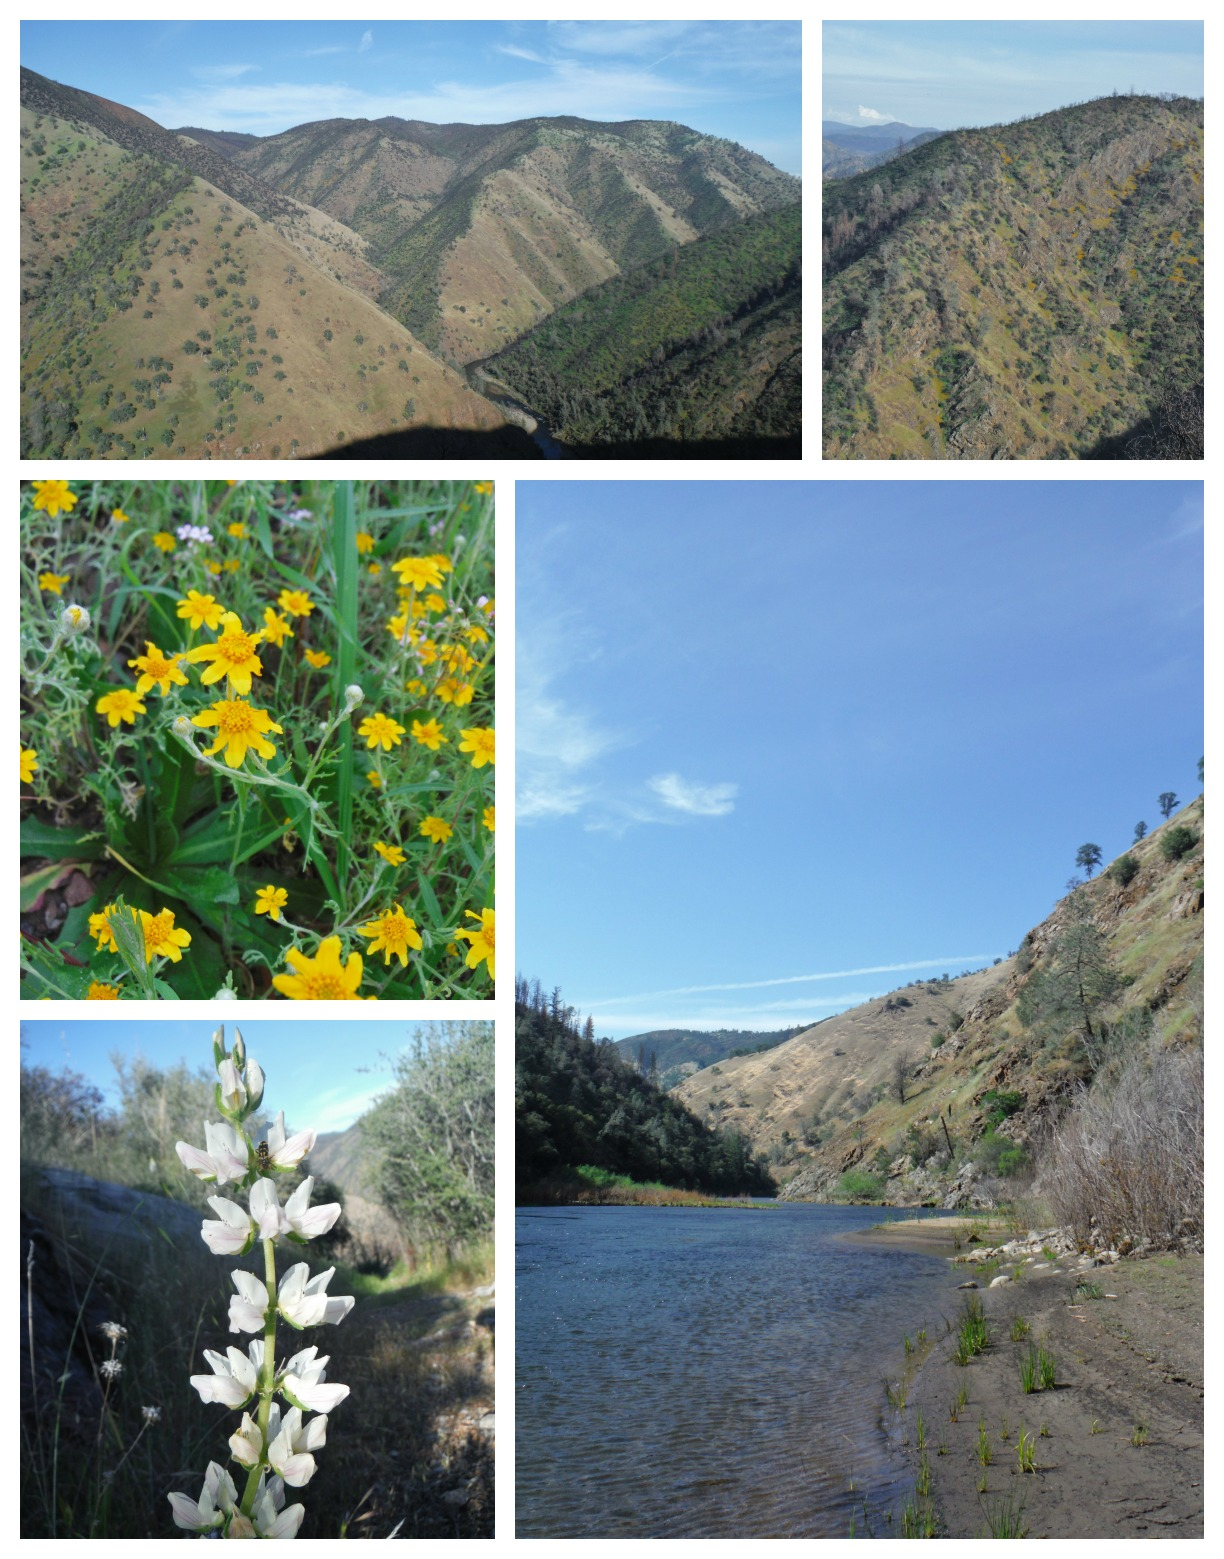 Groveland, CA hike to Tuolumne on Indian Creek Trail